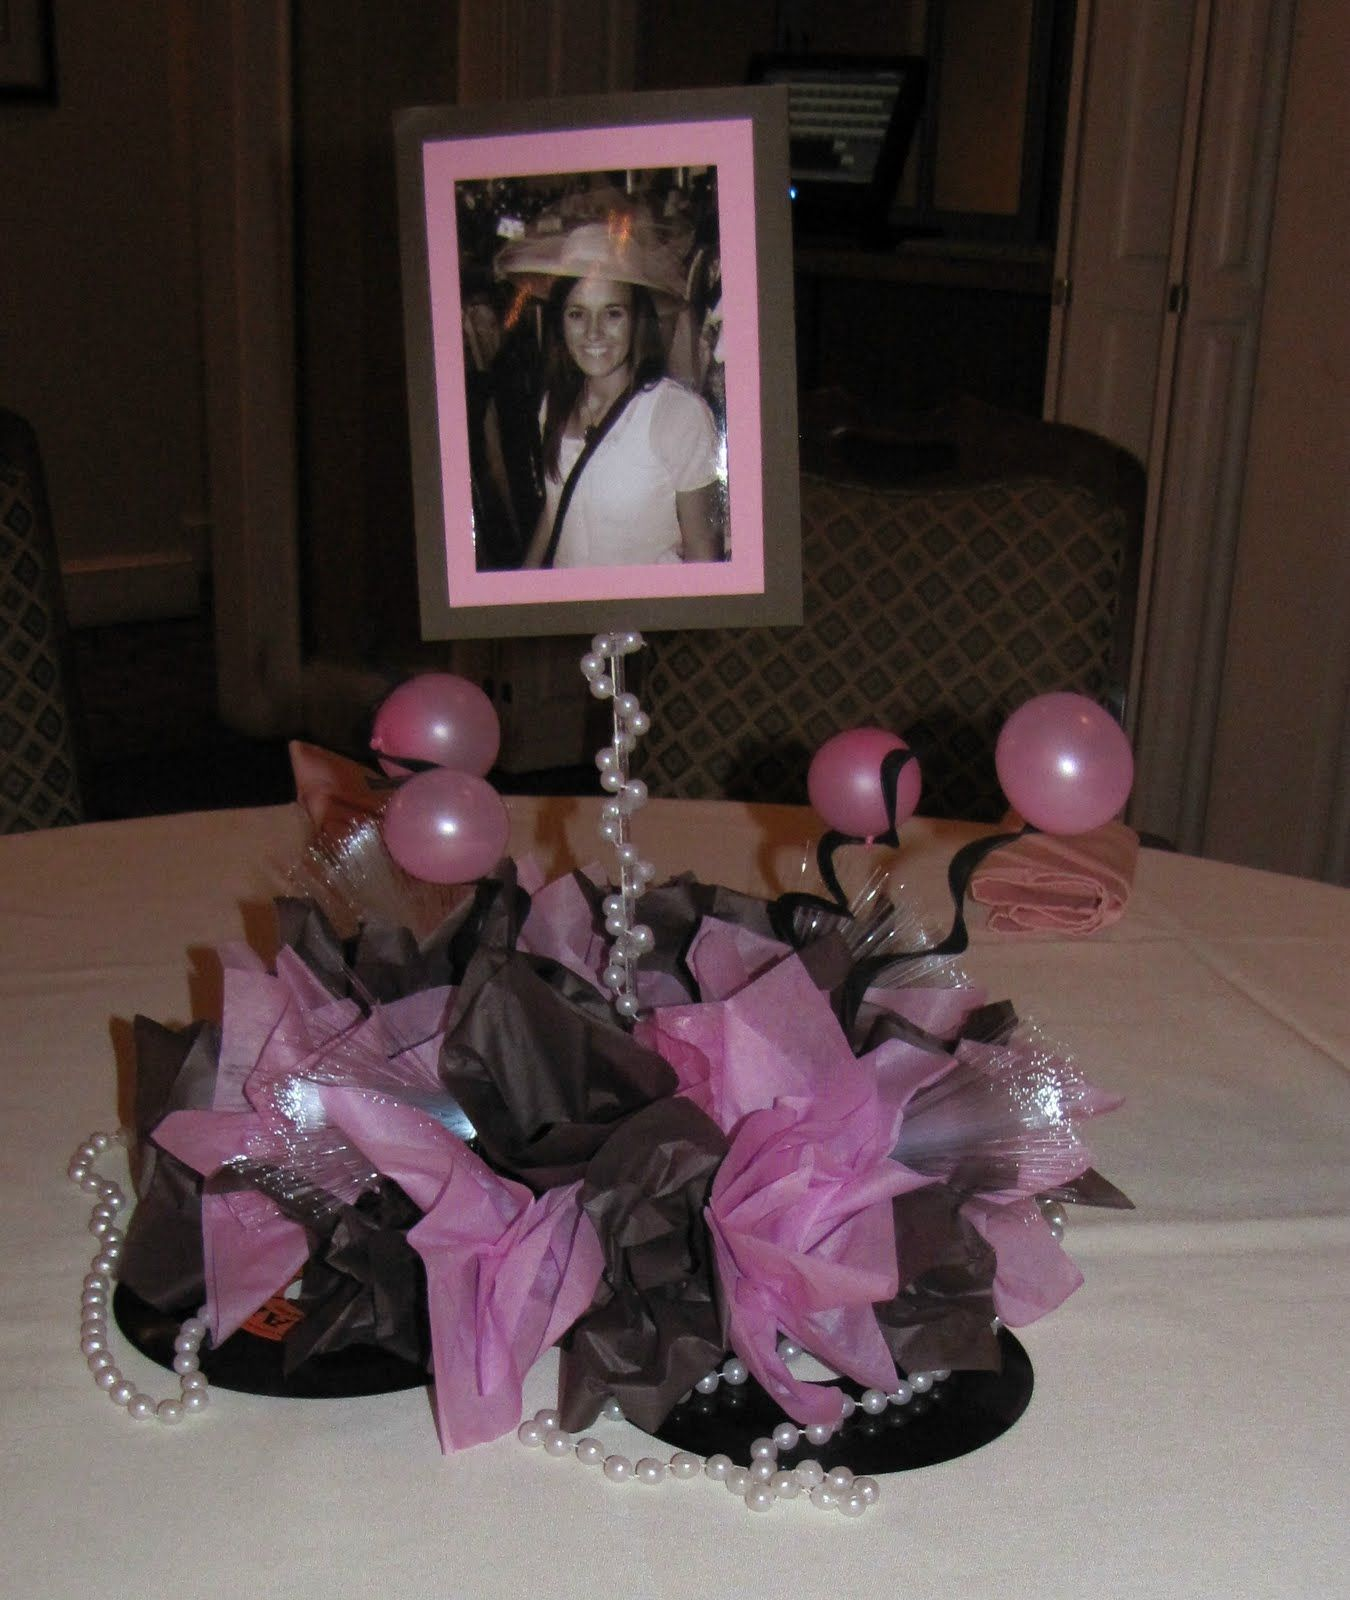 Sweet 16 Table Decoration Ideas sweet 16 centerpiece with feathers Simple Cute Centerpiece Could Put A Different Picture Of Her At Different Ages On Each